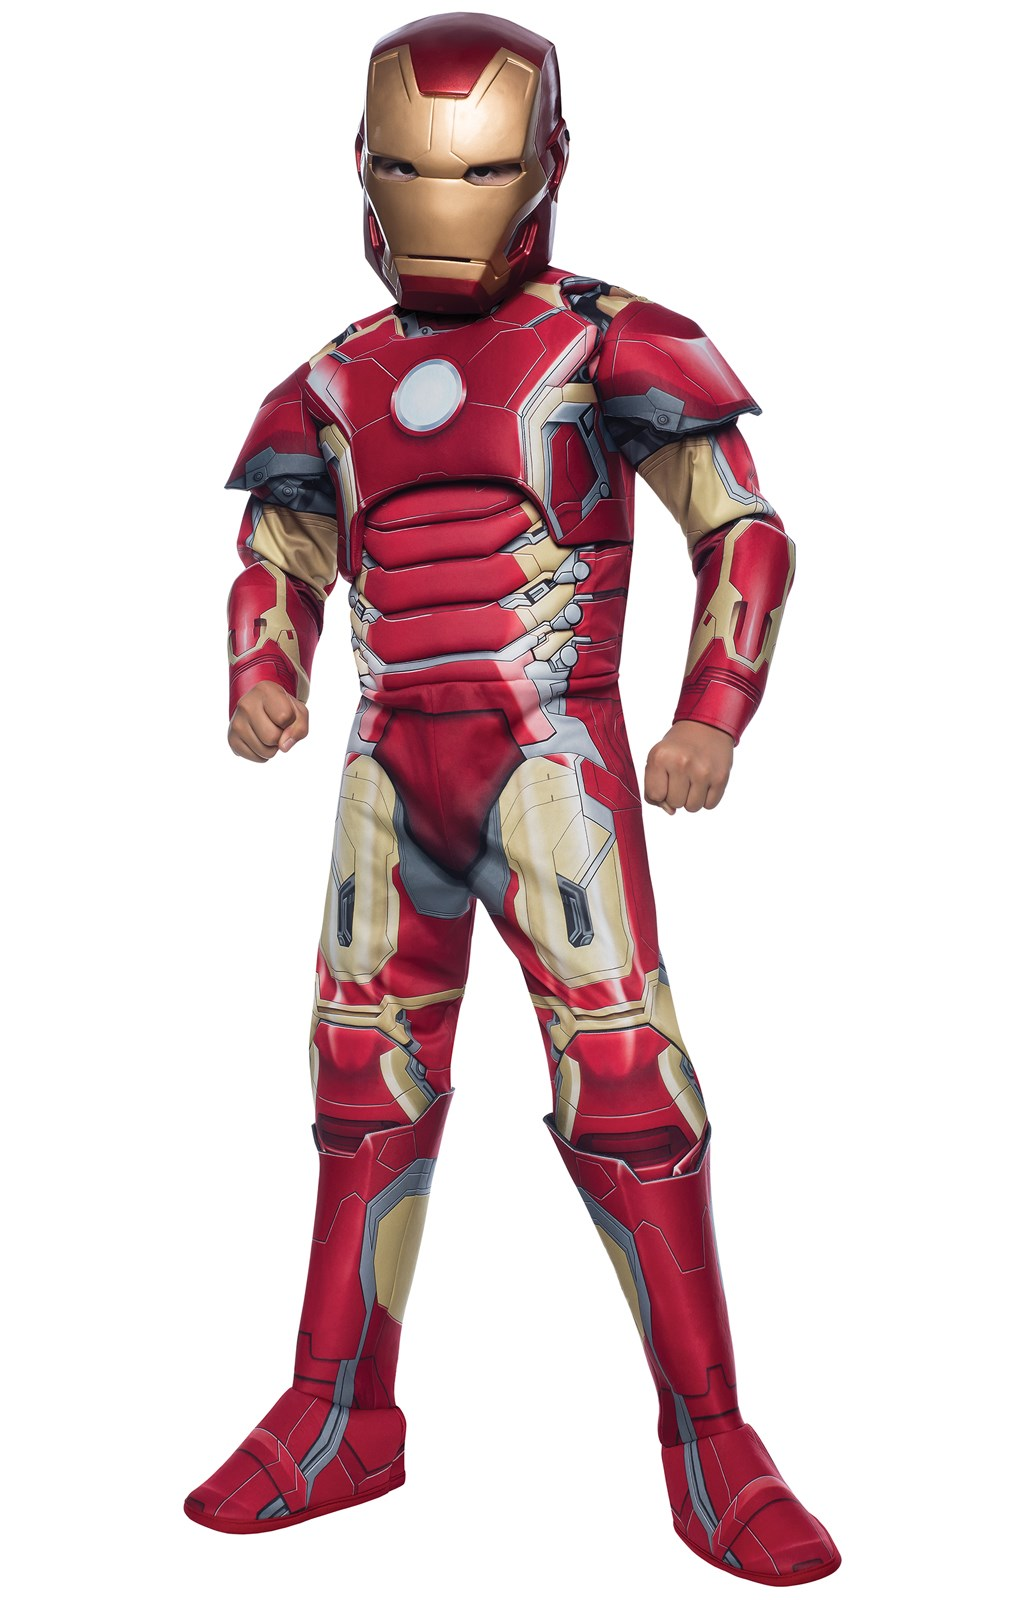 Avengers 2: Age of Ultron Deluxe Kids Iron Man Mark 43 Costume Large (12-14)